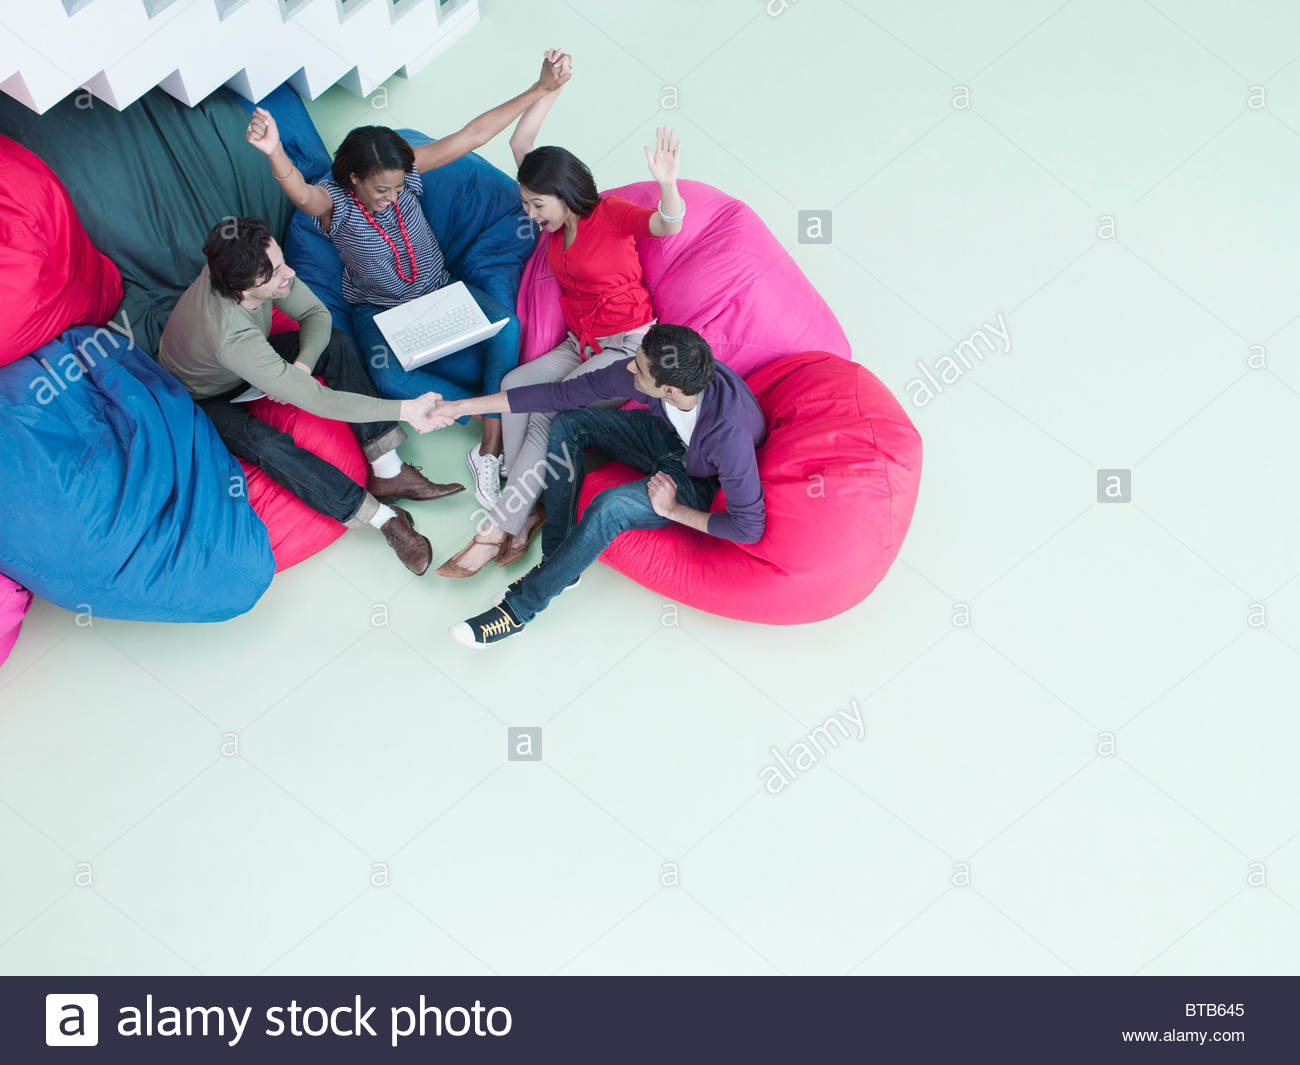 Excited business people with arms raised sitting in bean bag chairs and looking at laptop - Stock Image